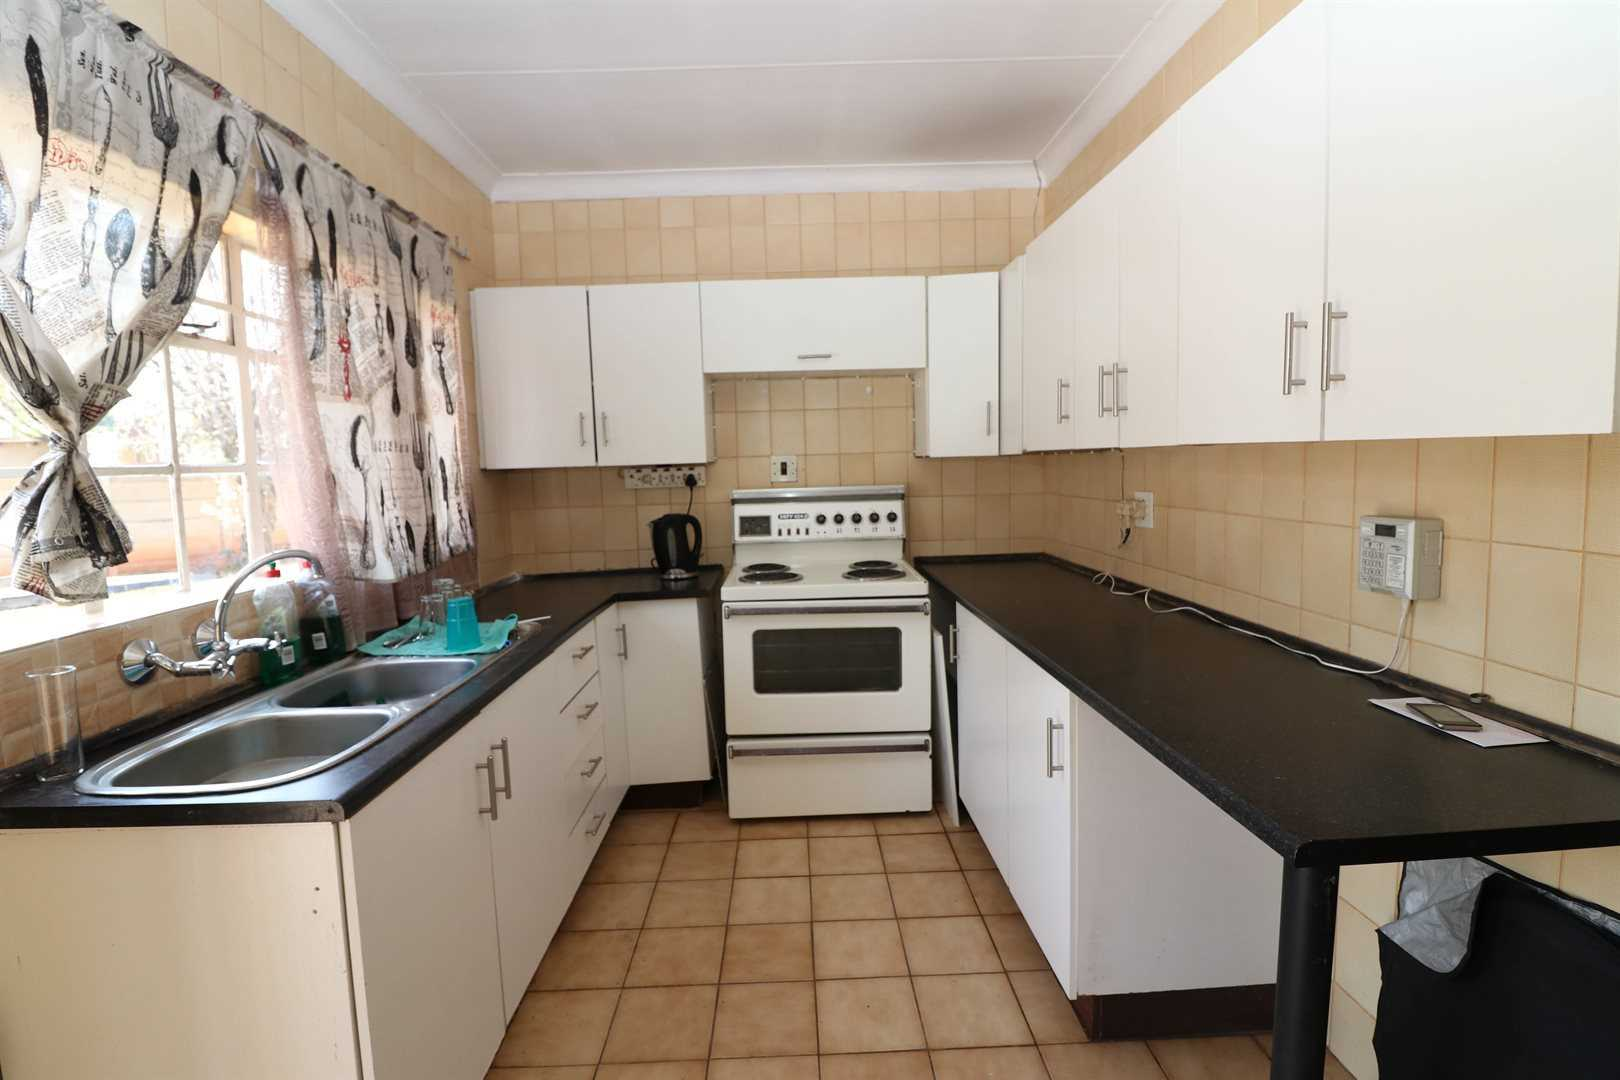 3 Bedroom house on large stand